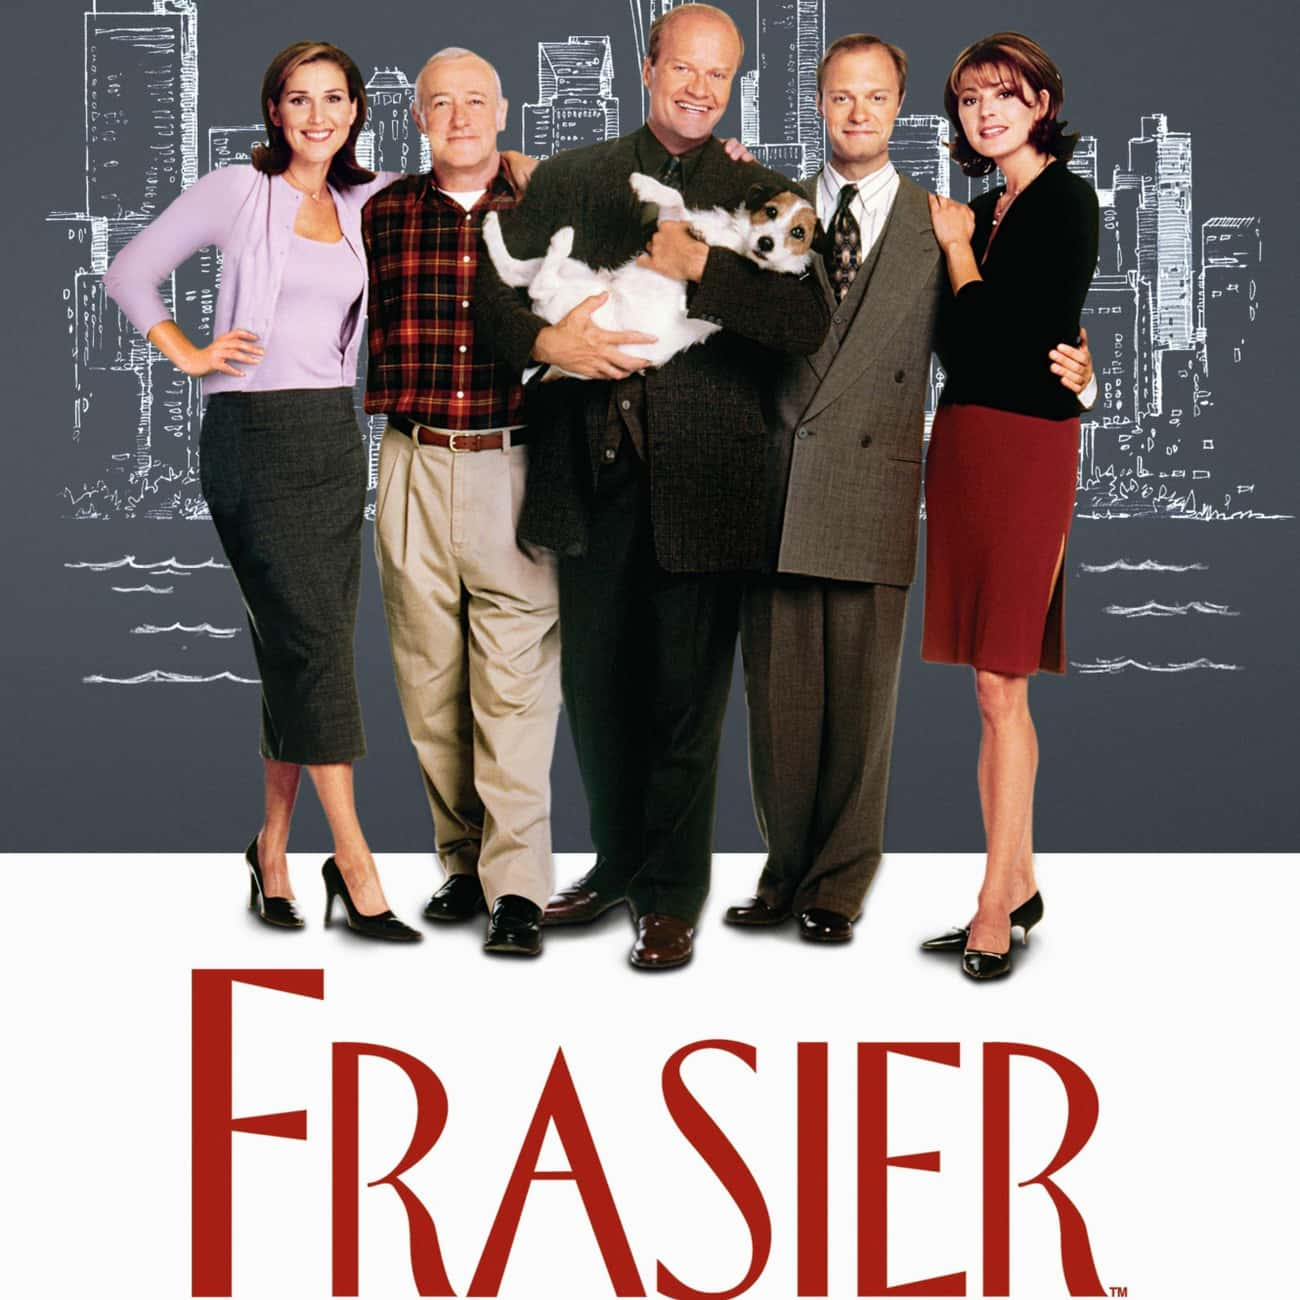 Frasier is listed (or ranked) 2 on the list What To Watch If You Love 'Cheers'